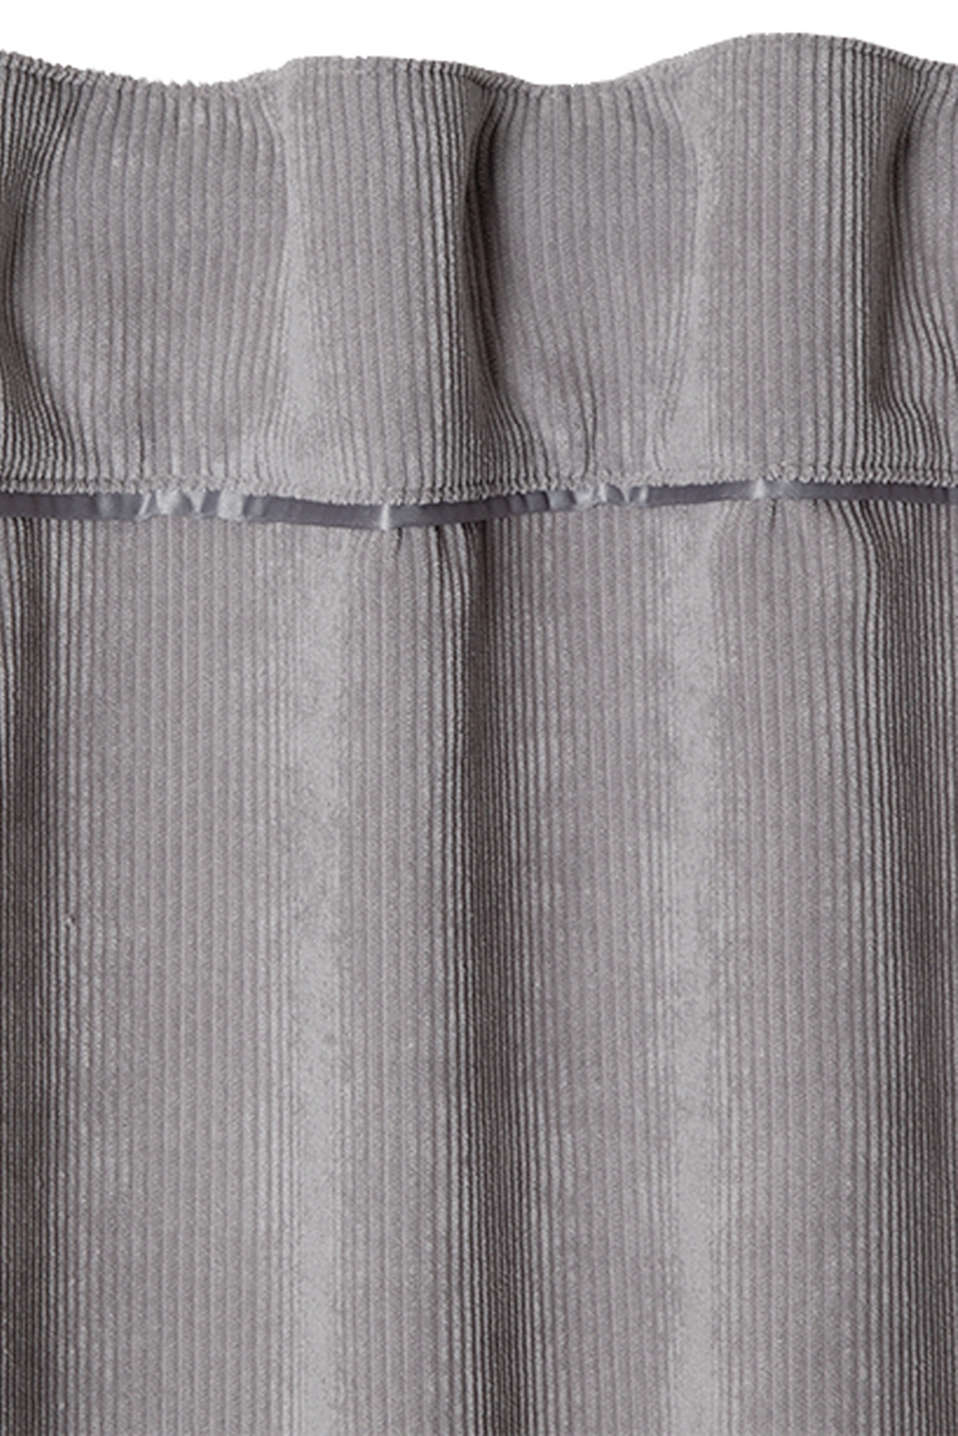 Corduroy curtains with concealed loops, GREY, detail image number 1